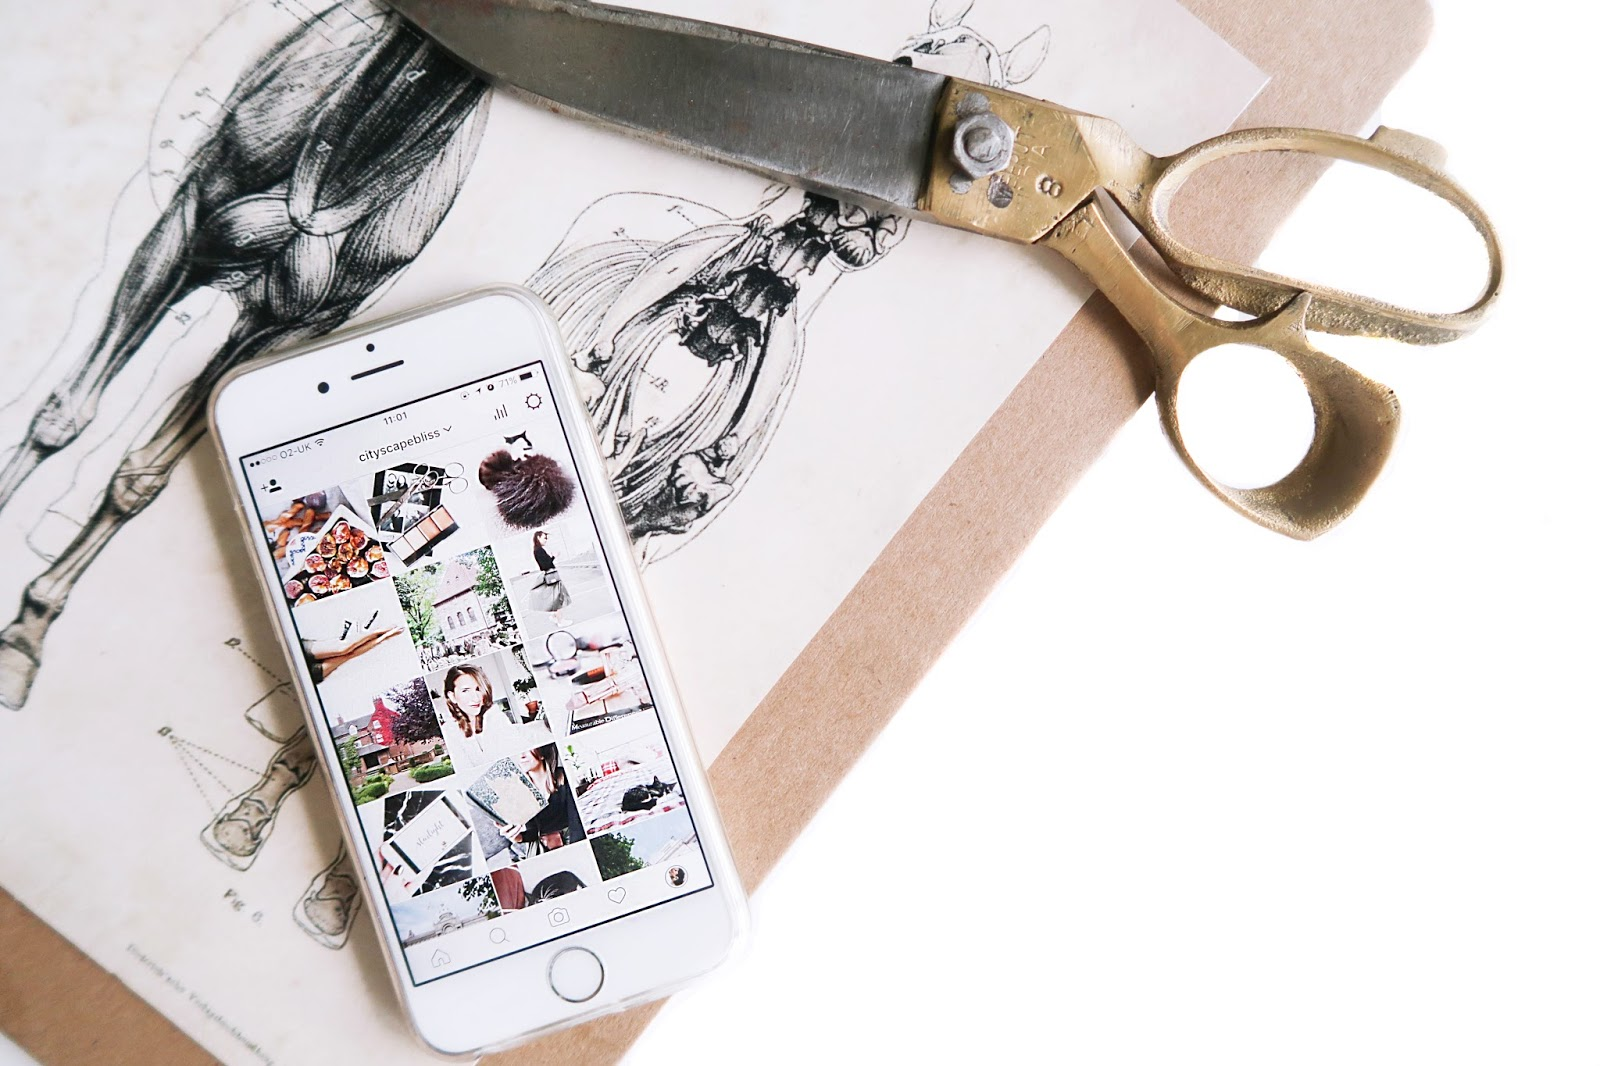 5 steps to improve your Instagram game NOW